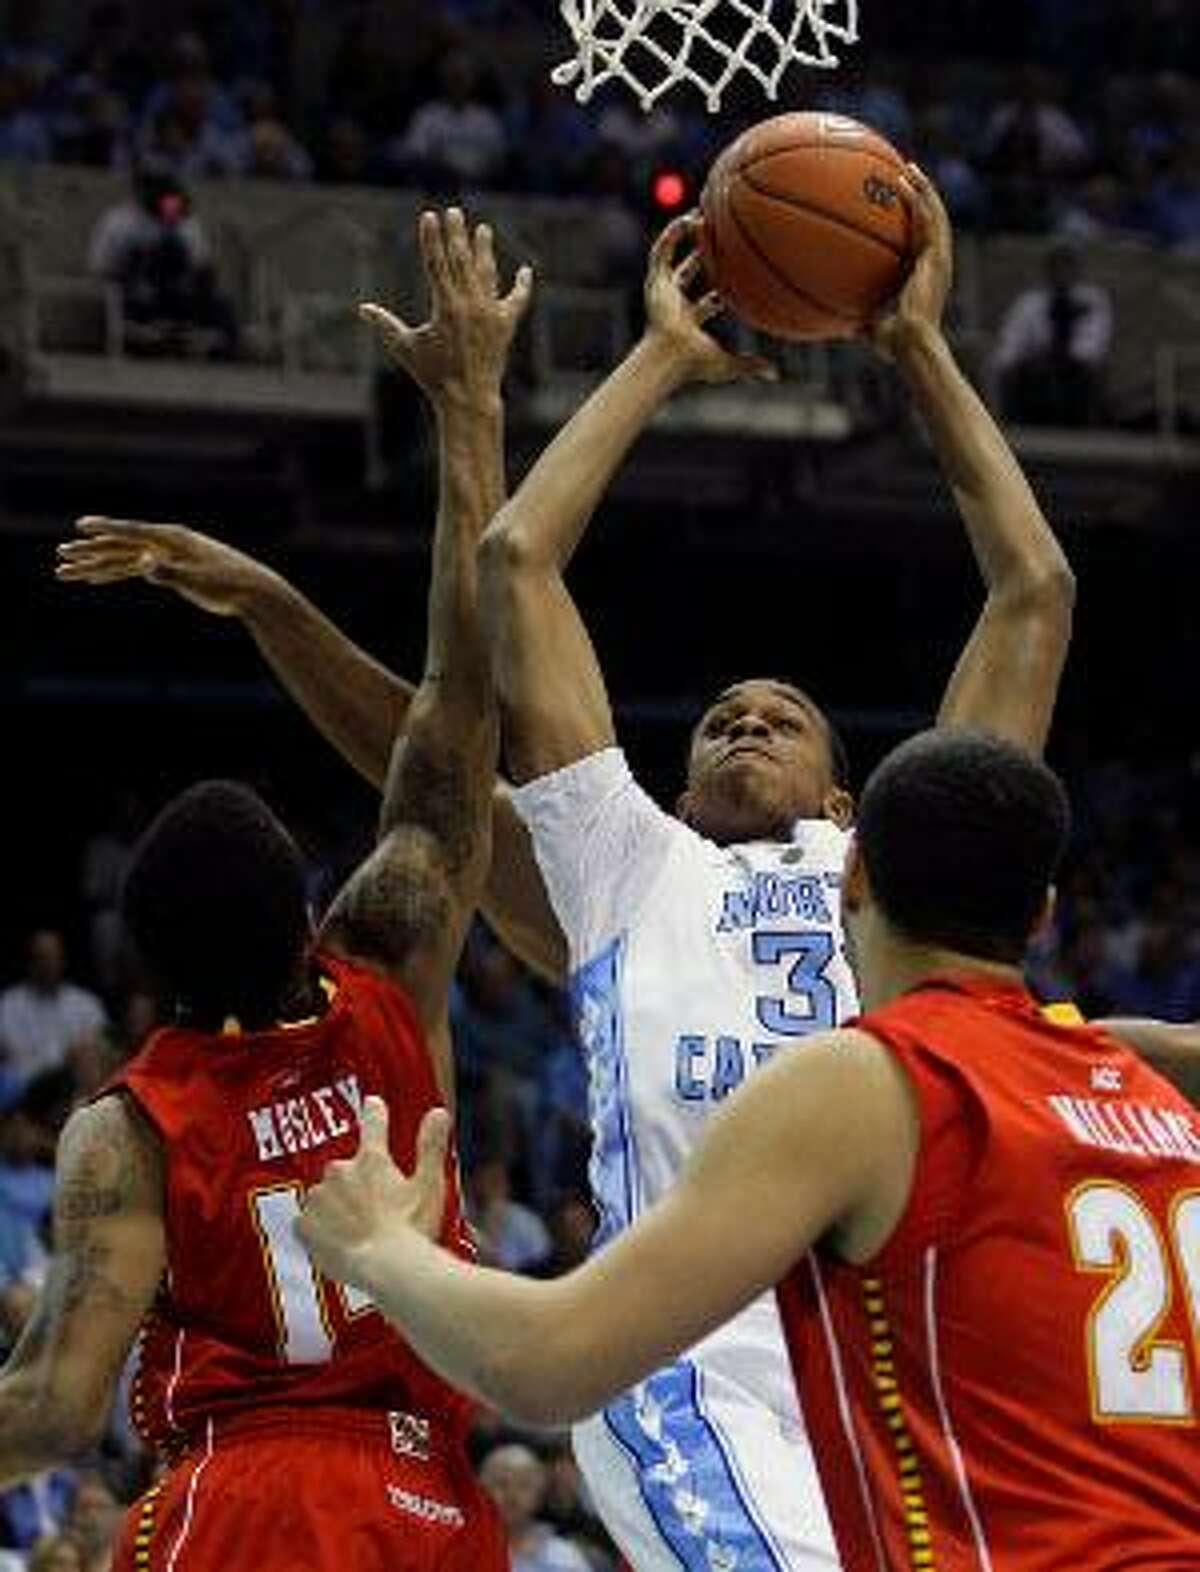 AP North Carolina's John Henson shoots as Maryland's Sean Mosley and Jordan Williams, right, defend during the first half of Sunday's game in Chapel Hill, N.C. Williams had 16 points and a career-high 19 rebounds The Tar Heels defeated the Terrapins 87-76.